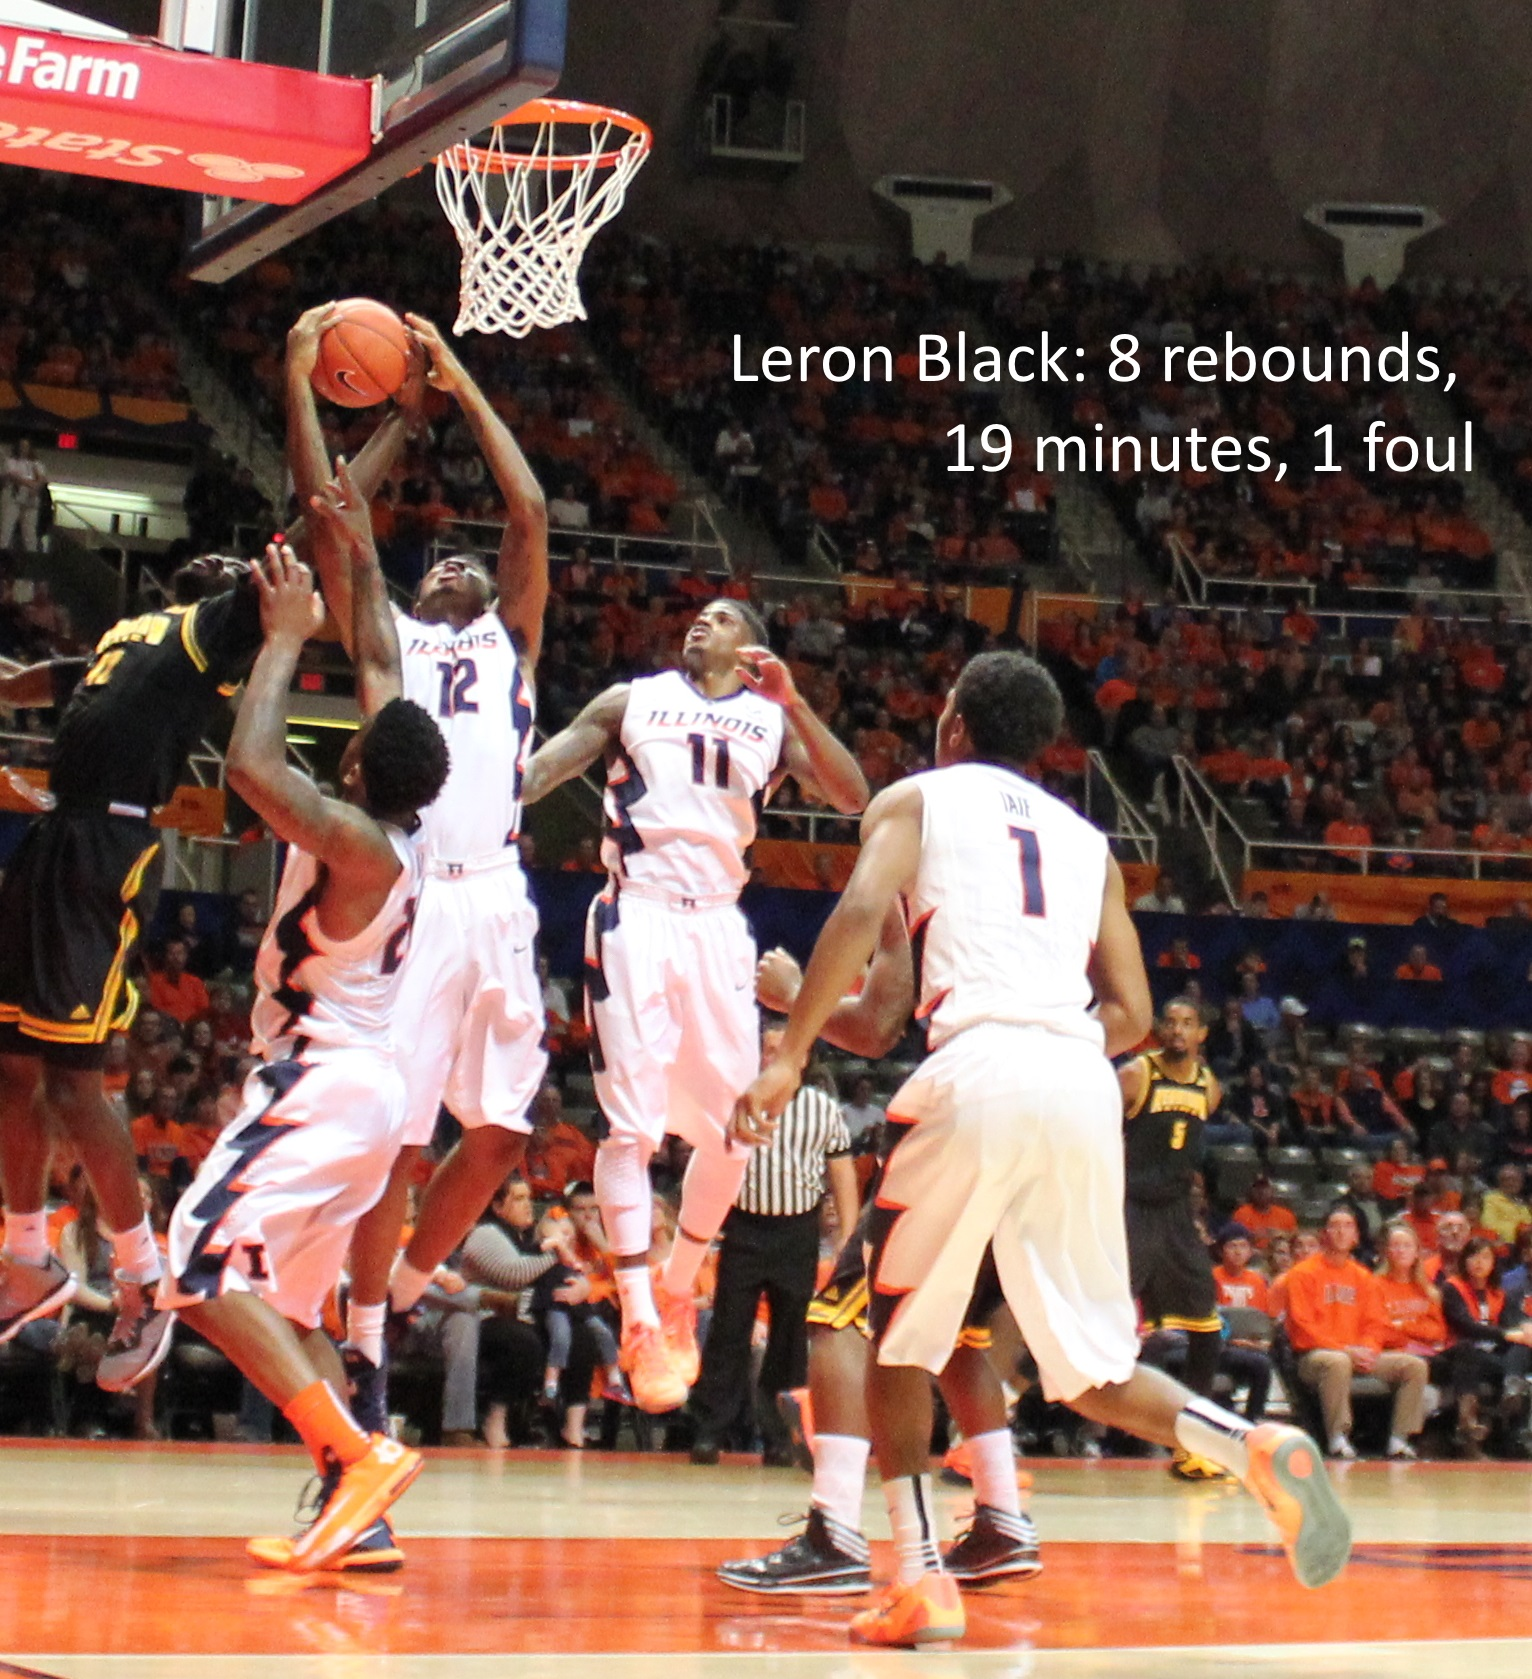 Leron Black - 8 rebounds - 1 foul